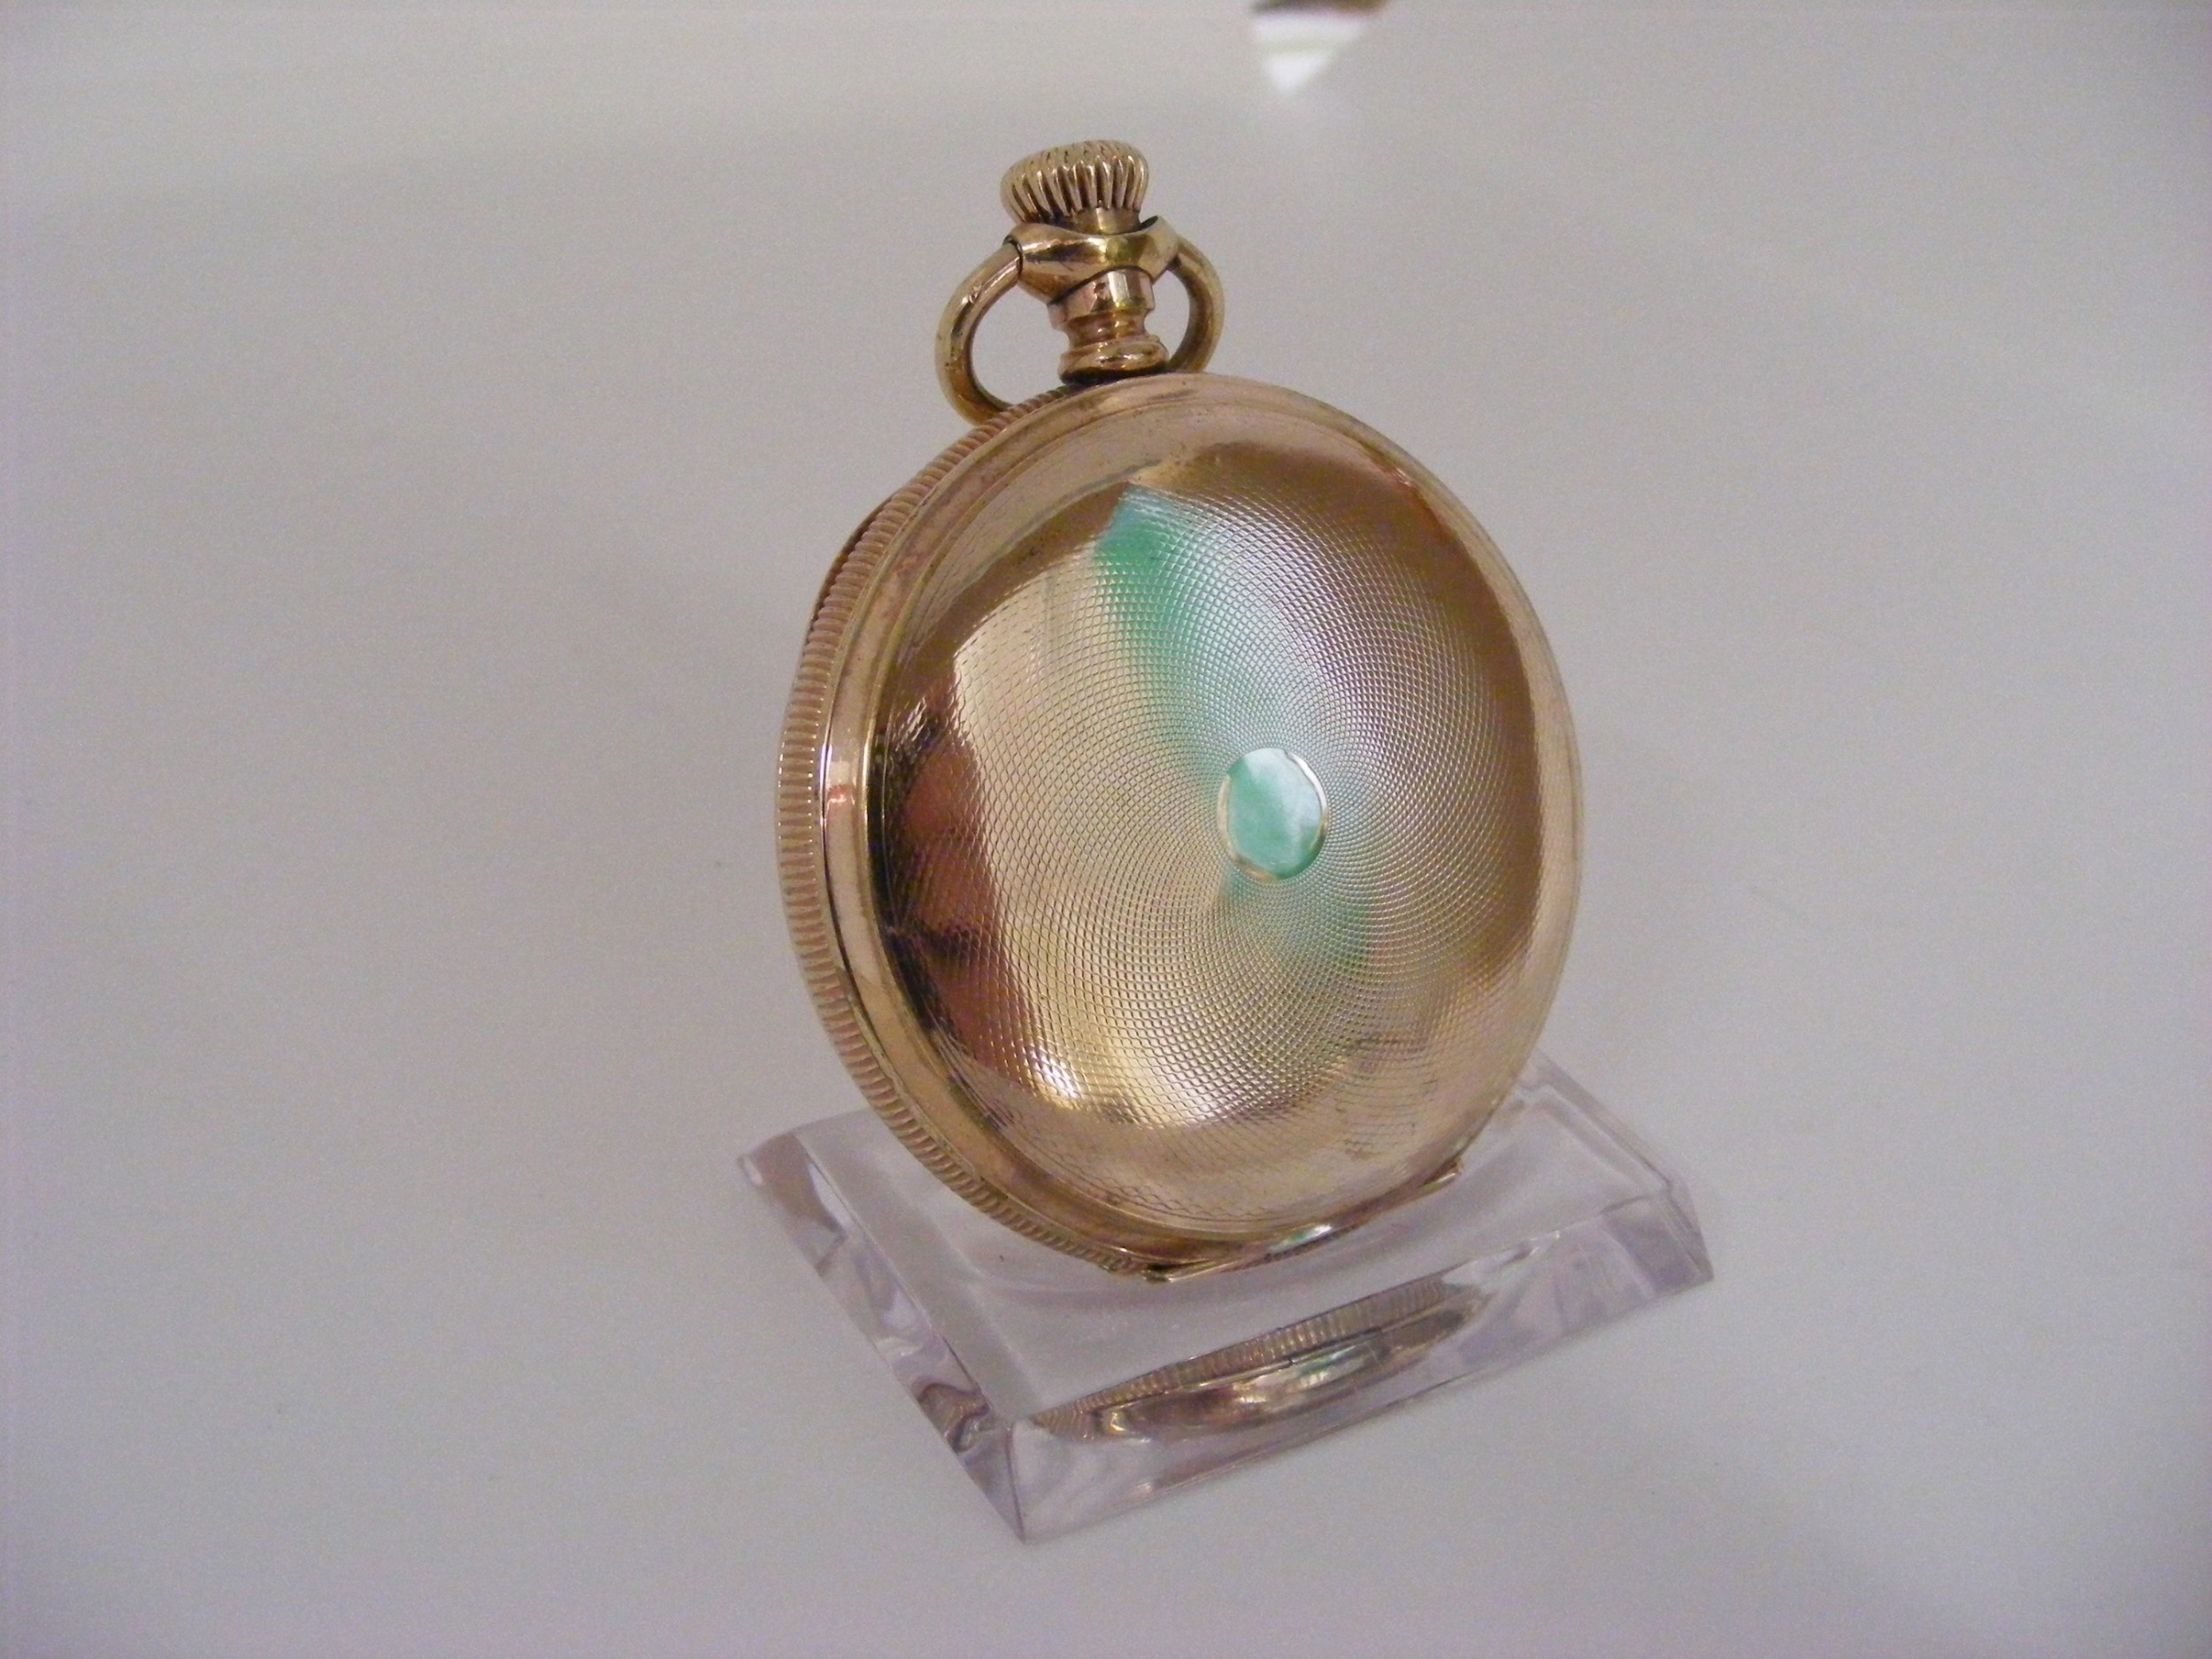 waltham hunting case pocket watch serviced warranted